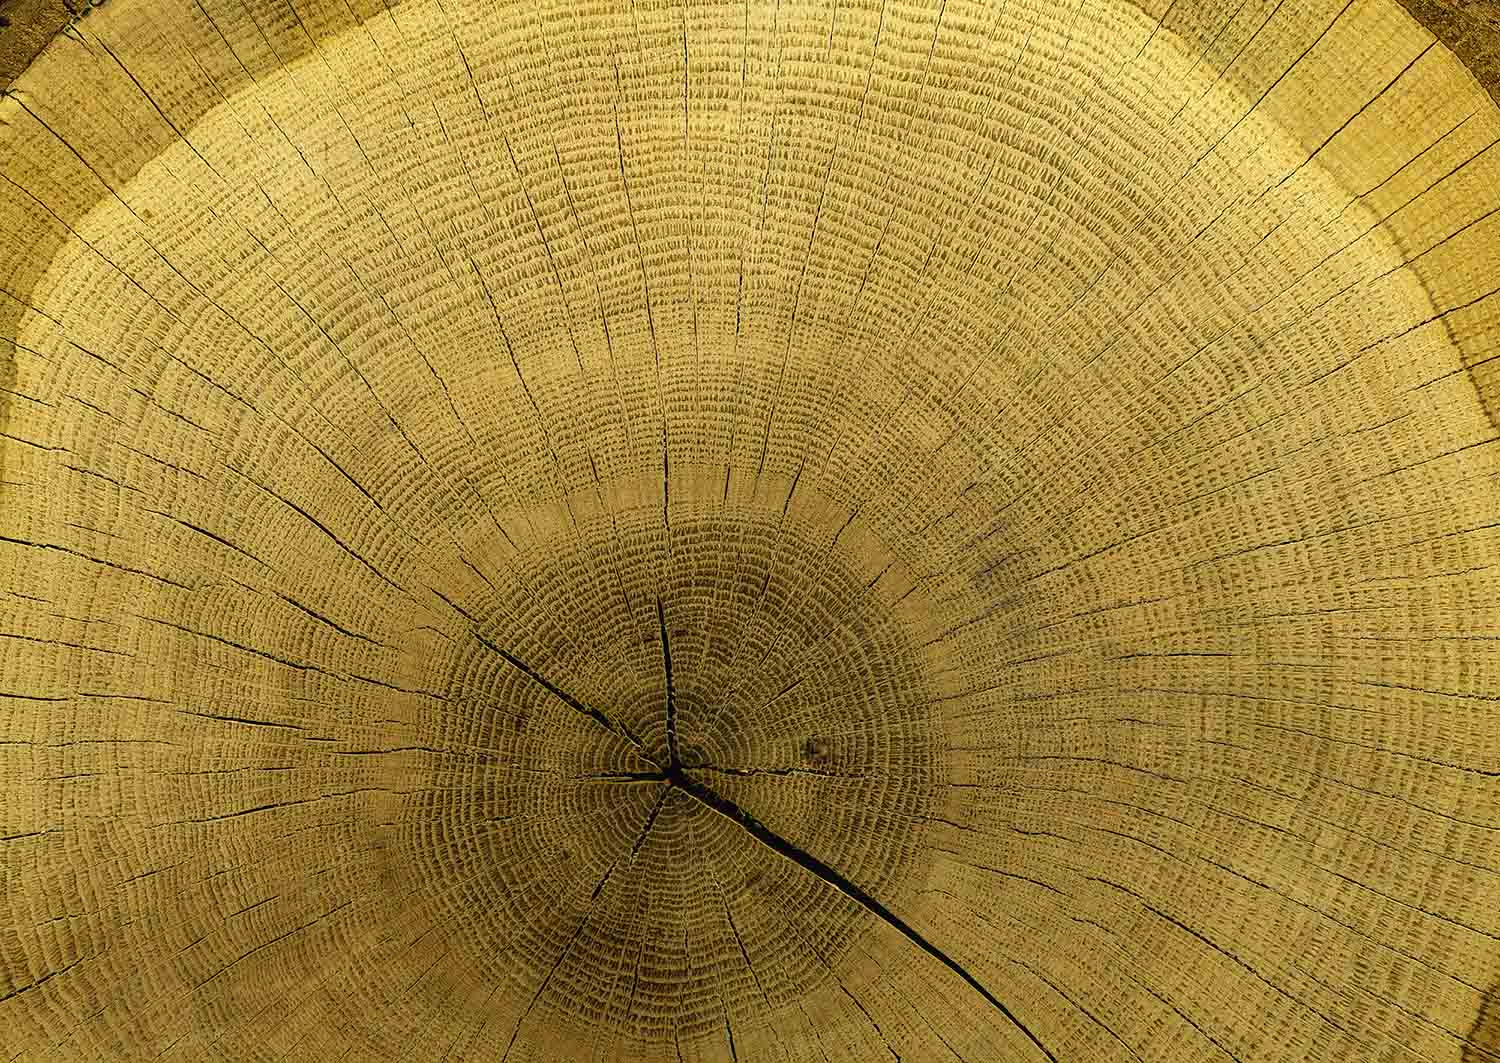 MU1589 - Centenary Tree Trunk